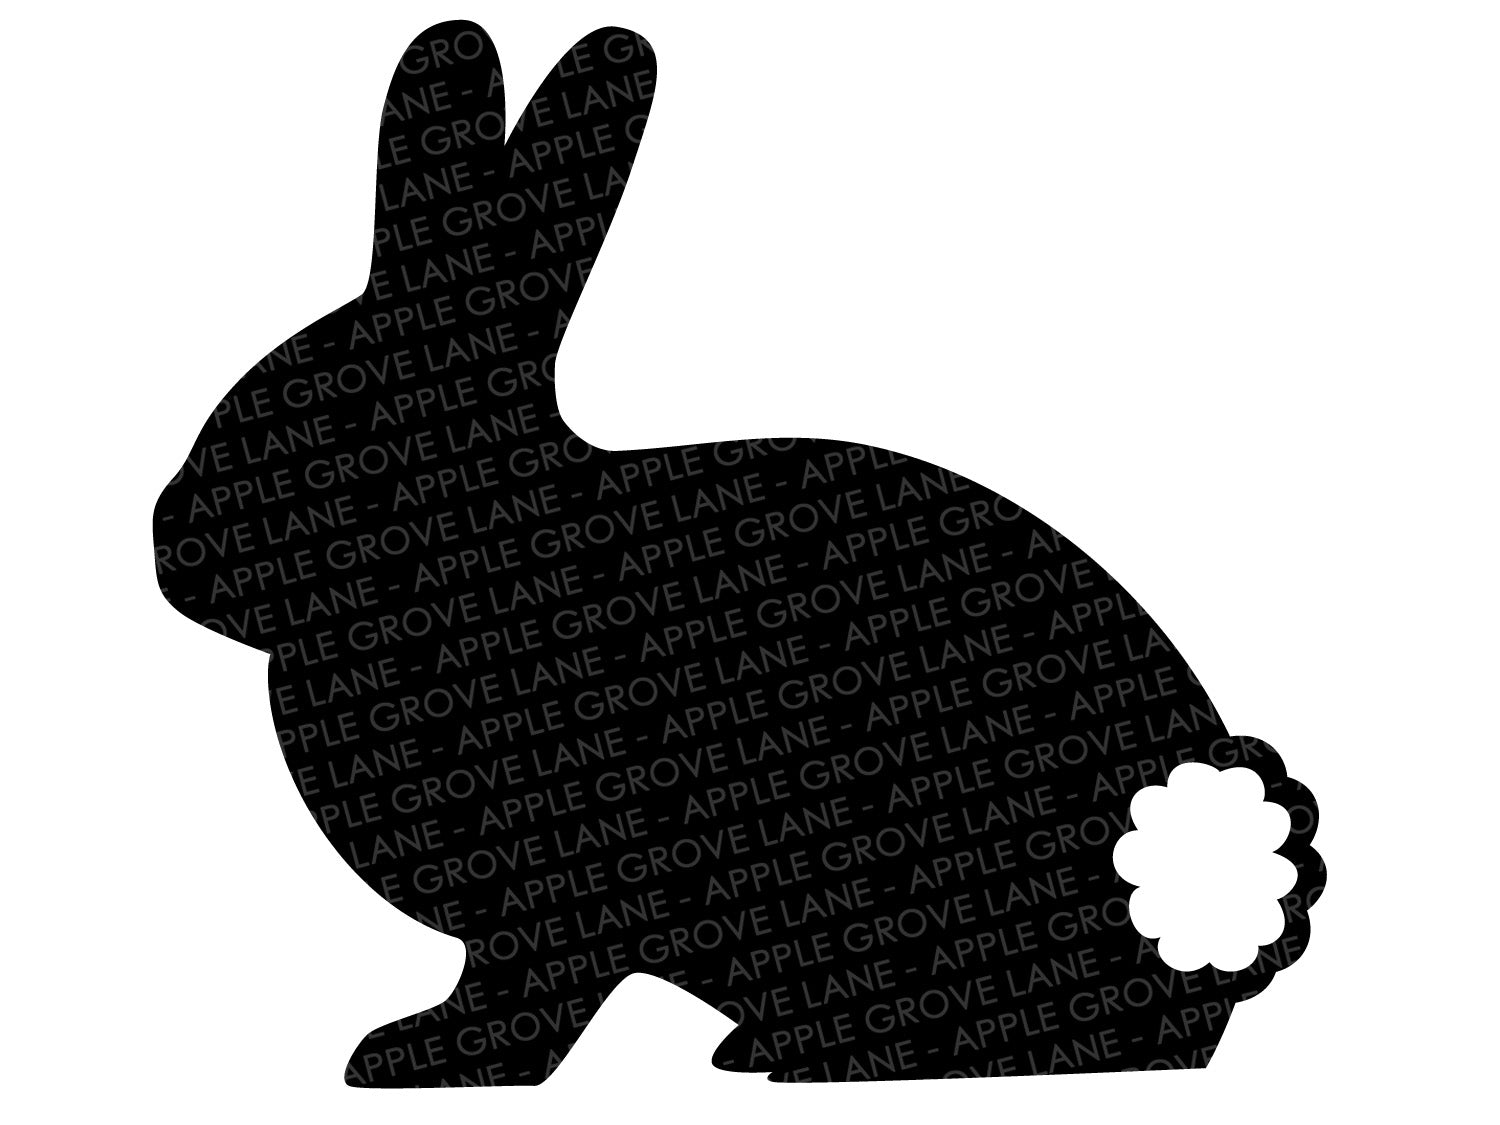 Bunny Outline Svg - Bunny Tail Svg - Easter Svg - Rabbit Svg - Easter Bunny Svg - Spring Svg - Easter Rabbit Svg - Svg Eps Dxf Png